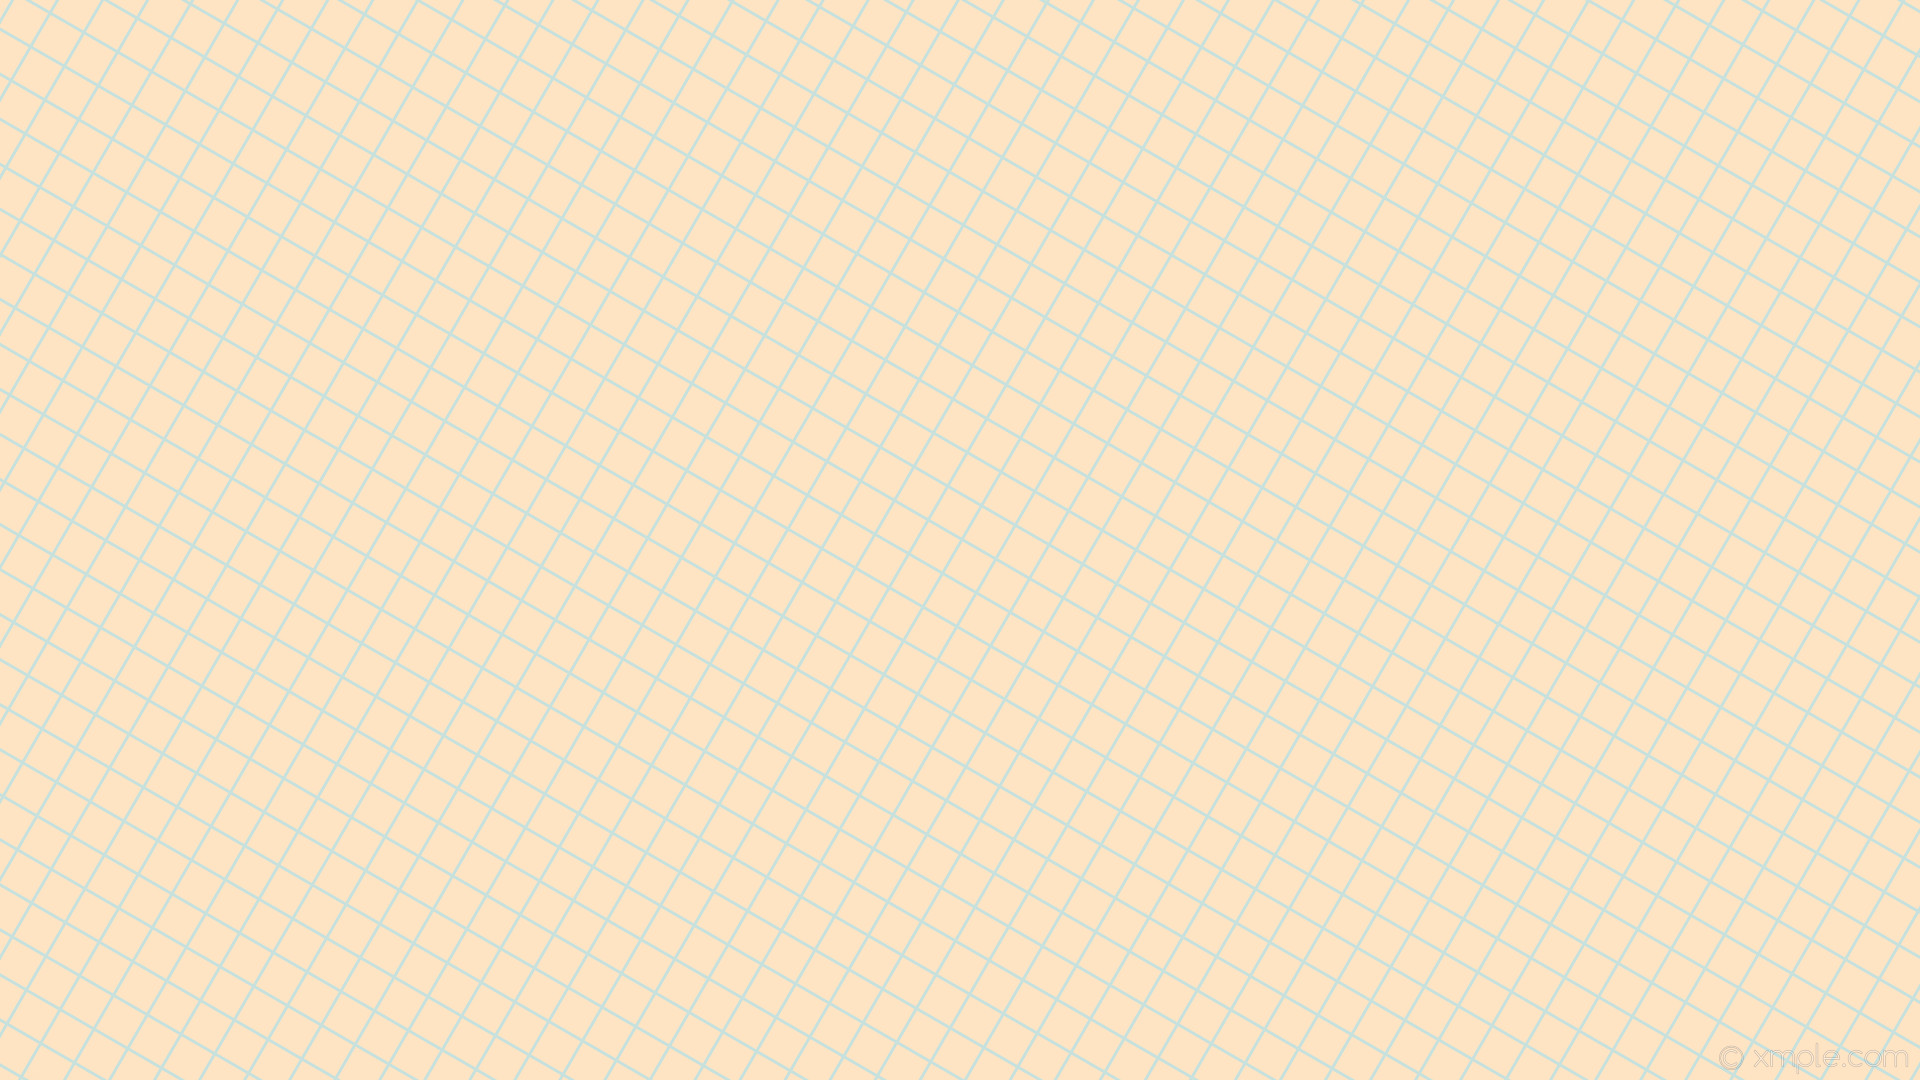 wallpaper blue grid graph paper brown bisque powder blue #ffe4c4 #b0e0e6  60° 3px